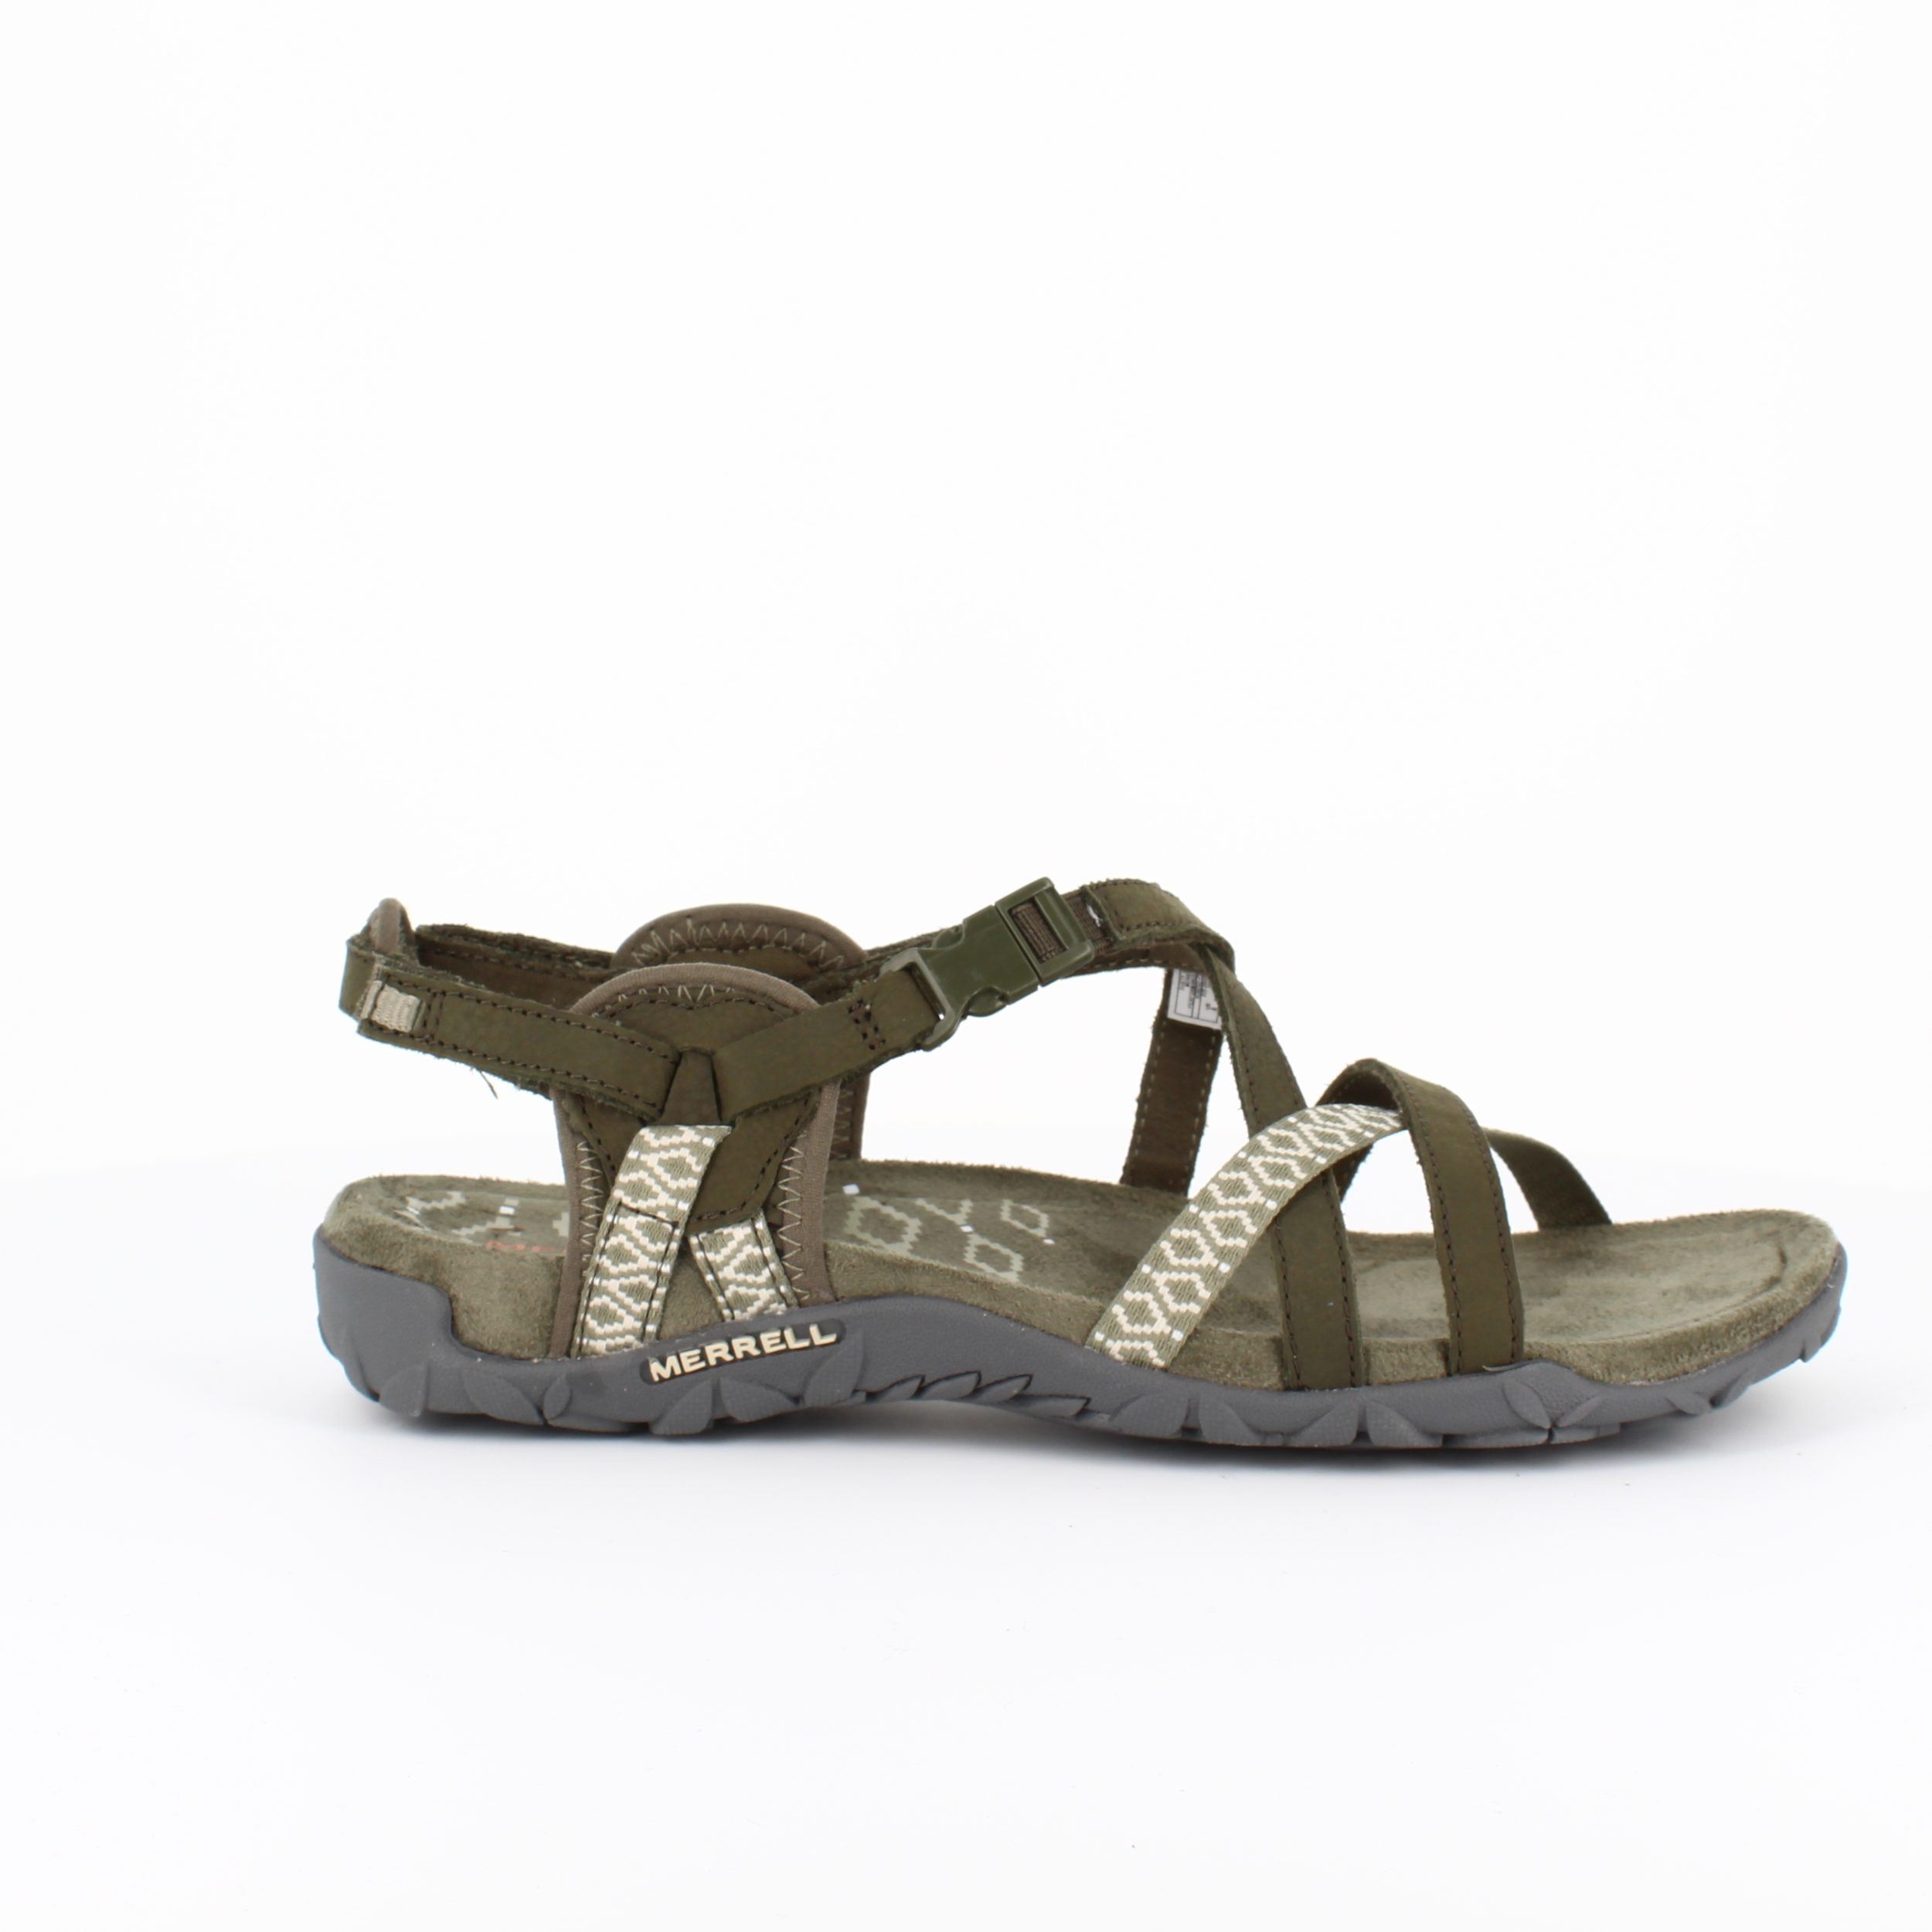 Image of   Olivenfarvet sandal, Terran Lattice sandal fra Merrell - 42